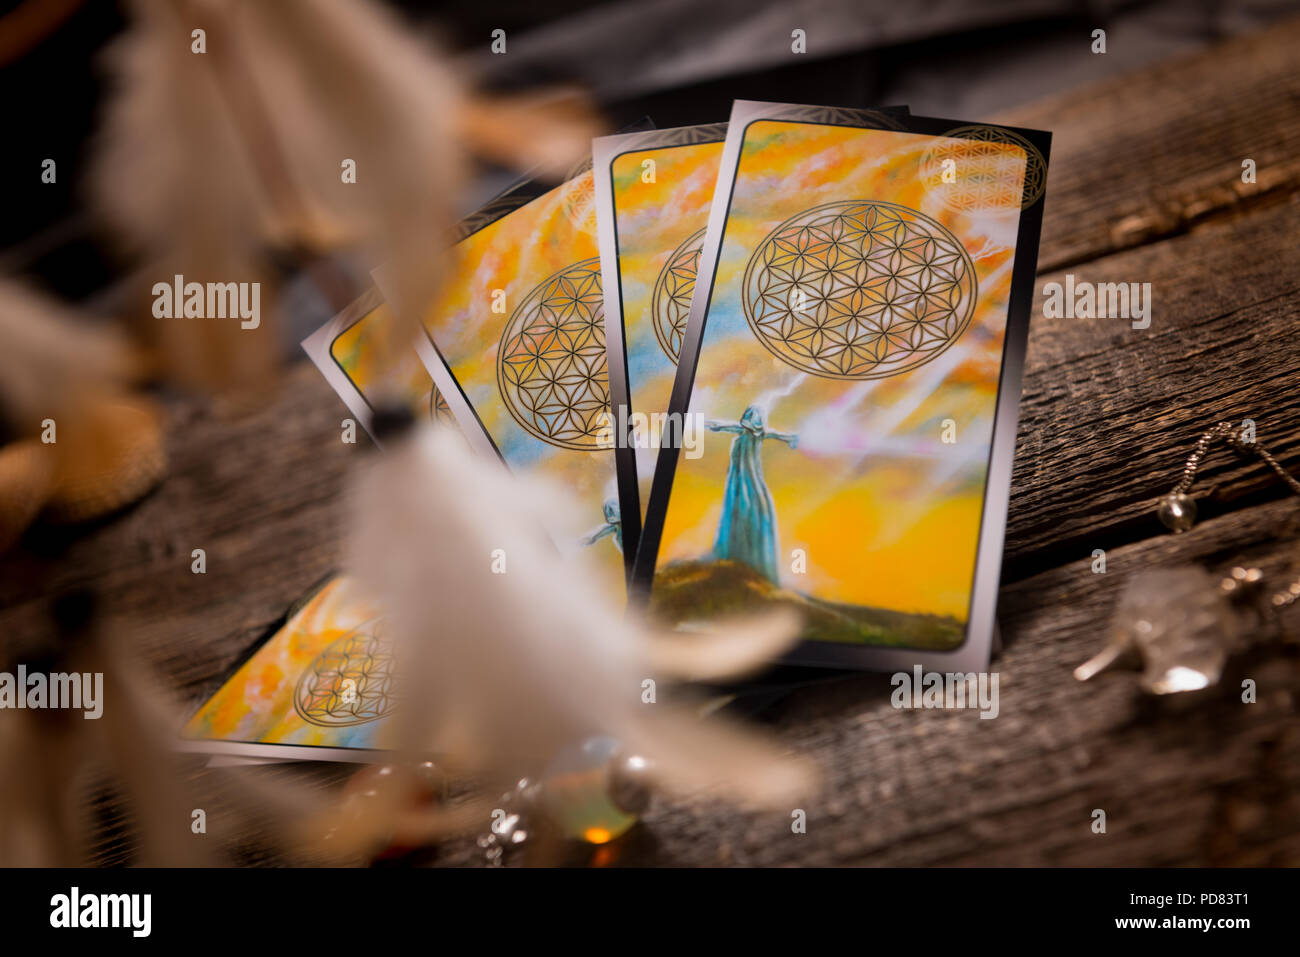 Tarot cards and other fortune teller's accessories - Stock Image